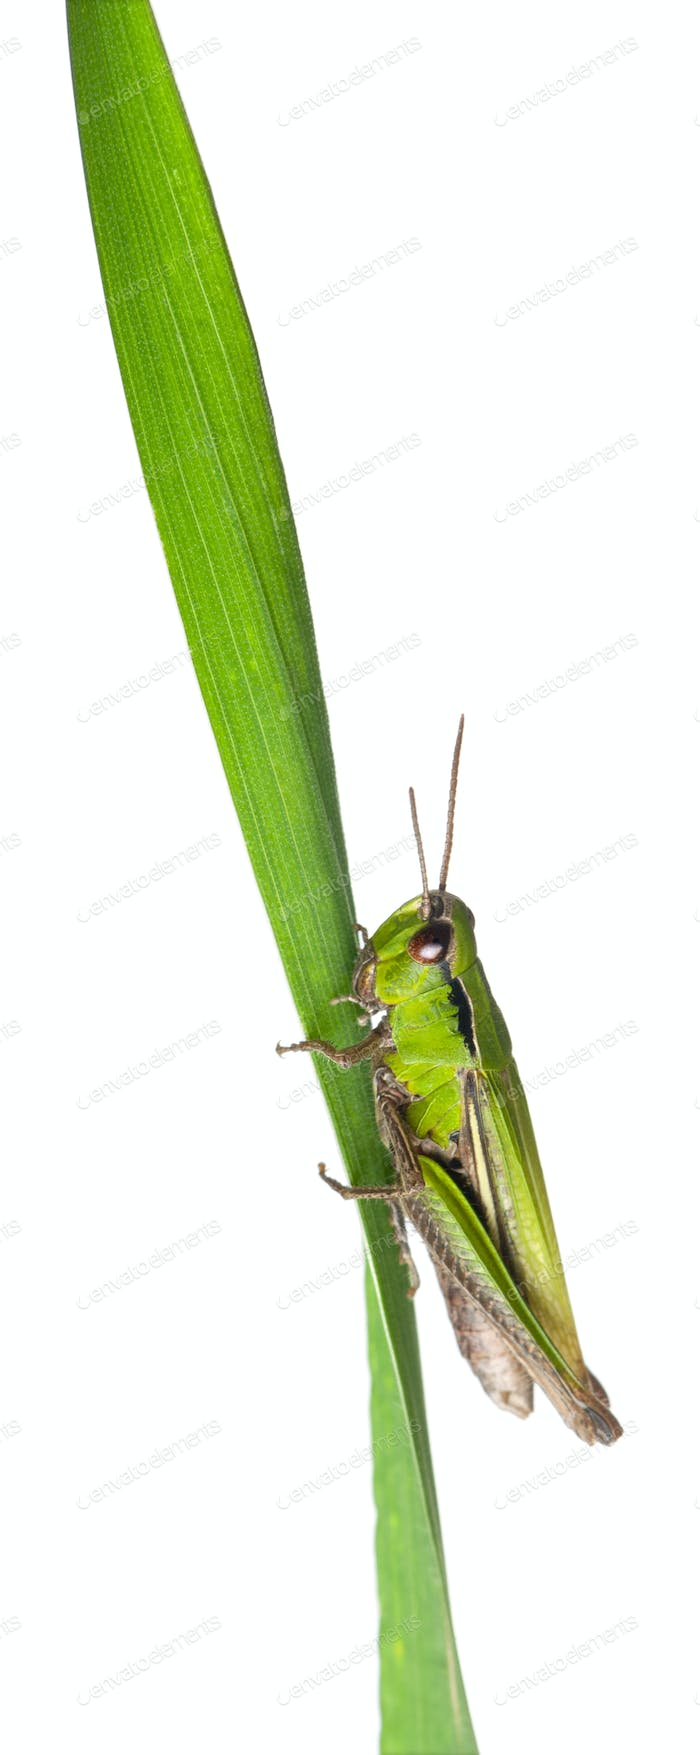 Cricket on a grass blade in front of white background